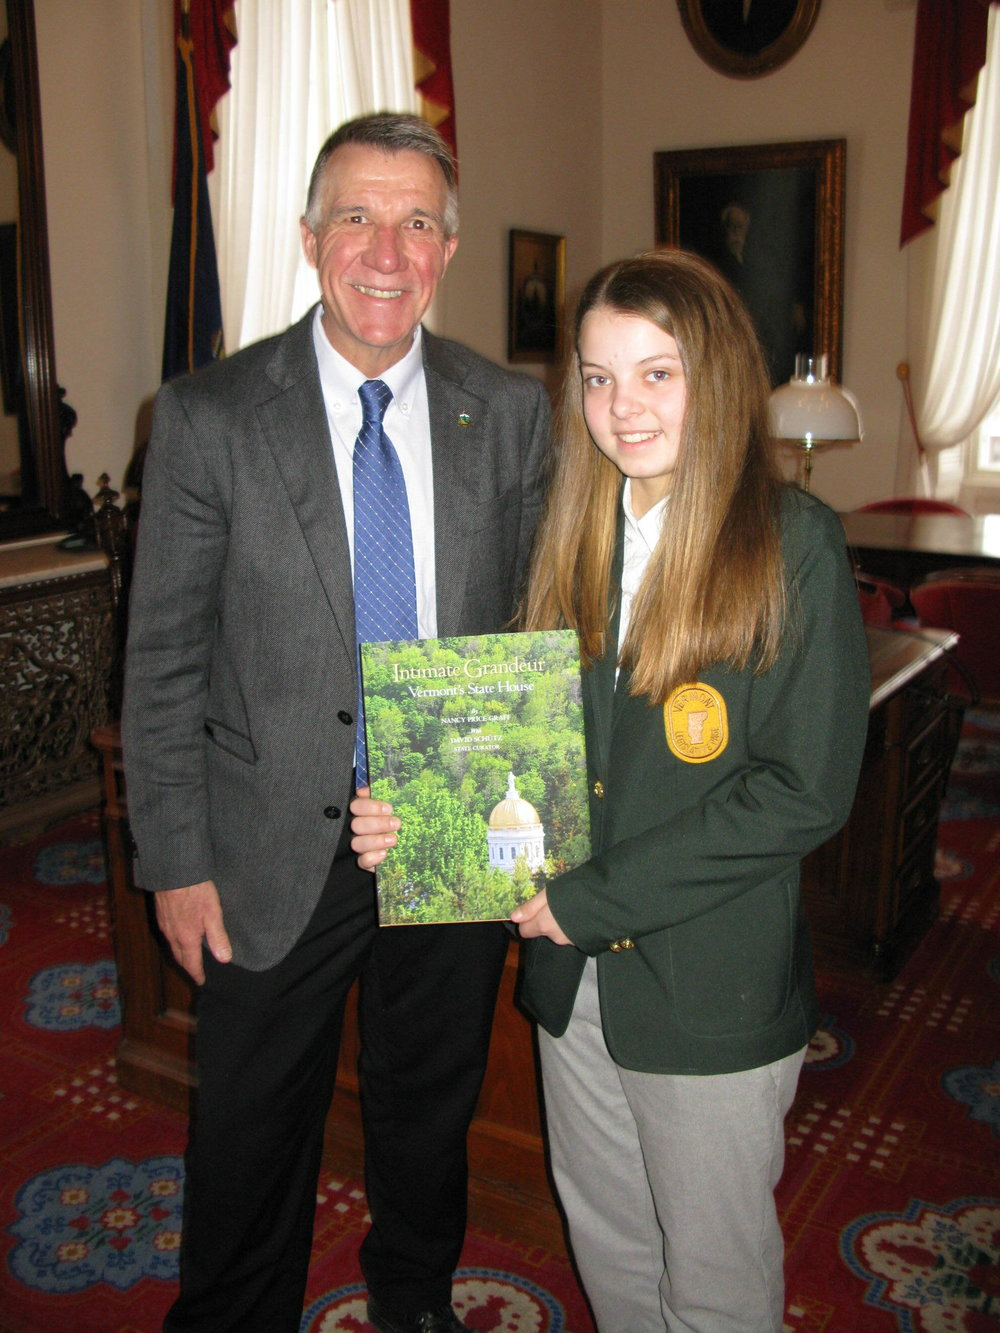 Governor Scott with Sabina and her copy Intimate Grandeur, the State House history.